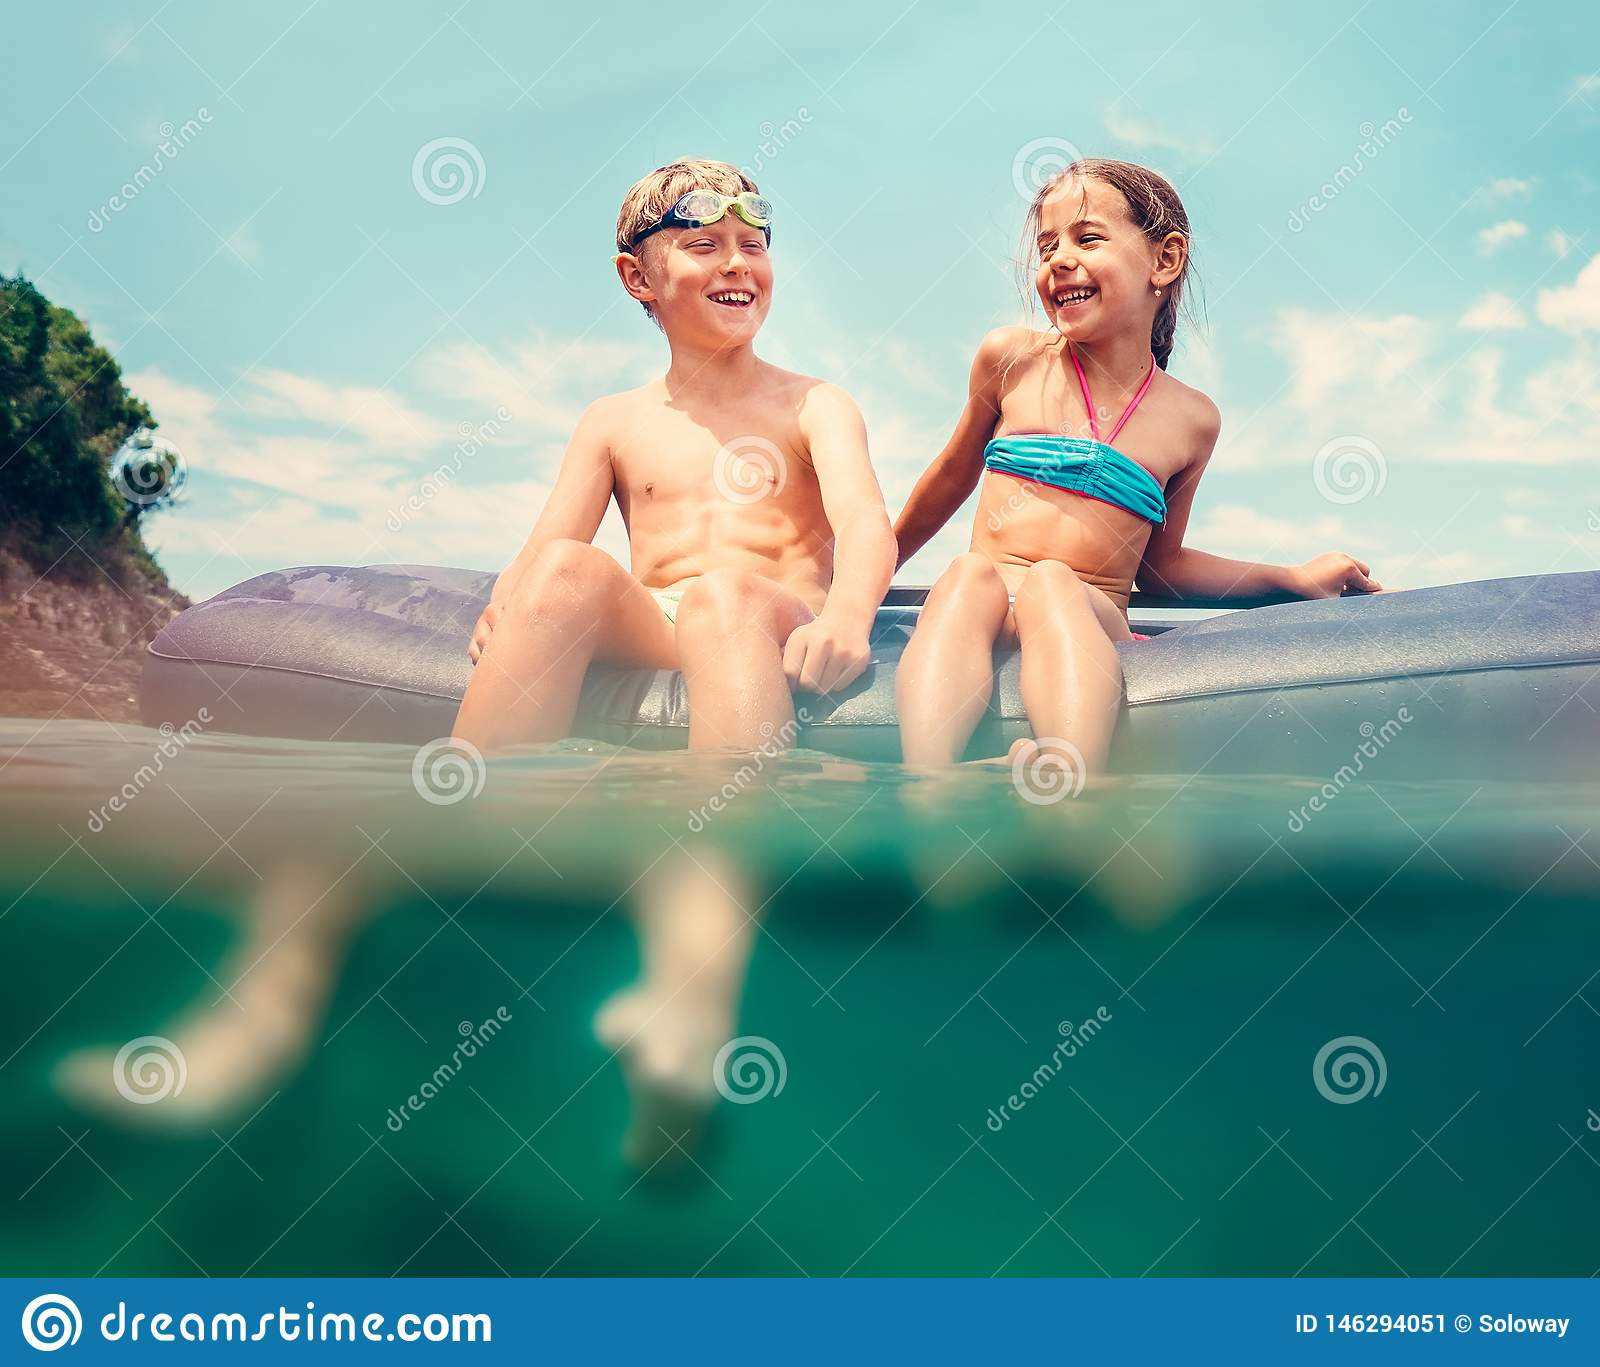 Sister and brother sitting on inflatable mattress and enjoying the sea water, cheerfully laughing when swim in the sea. Careless